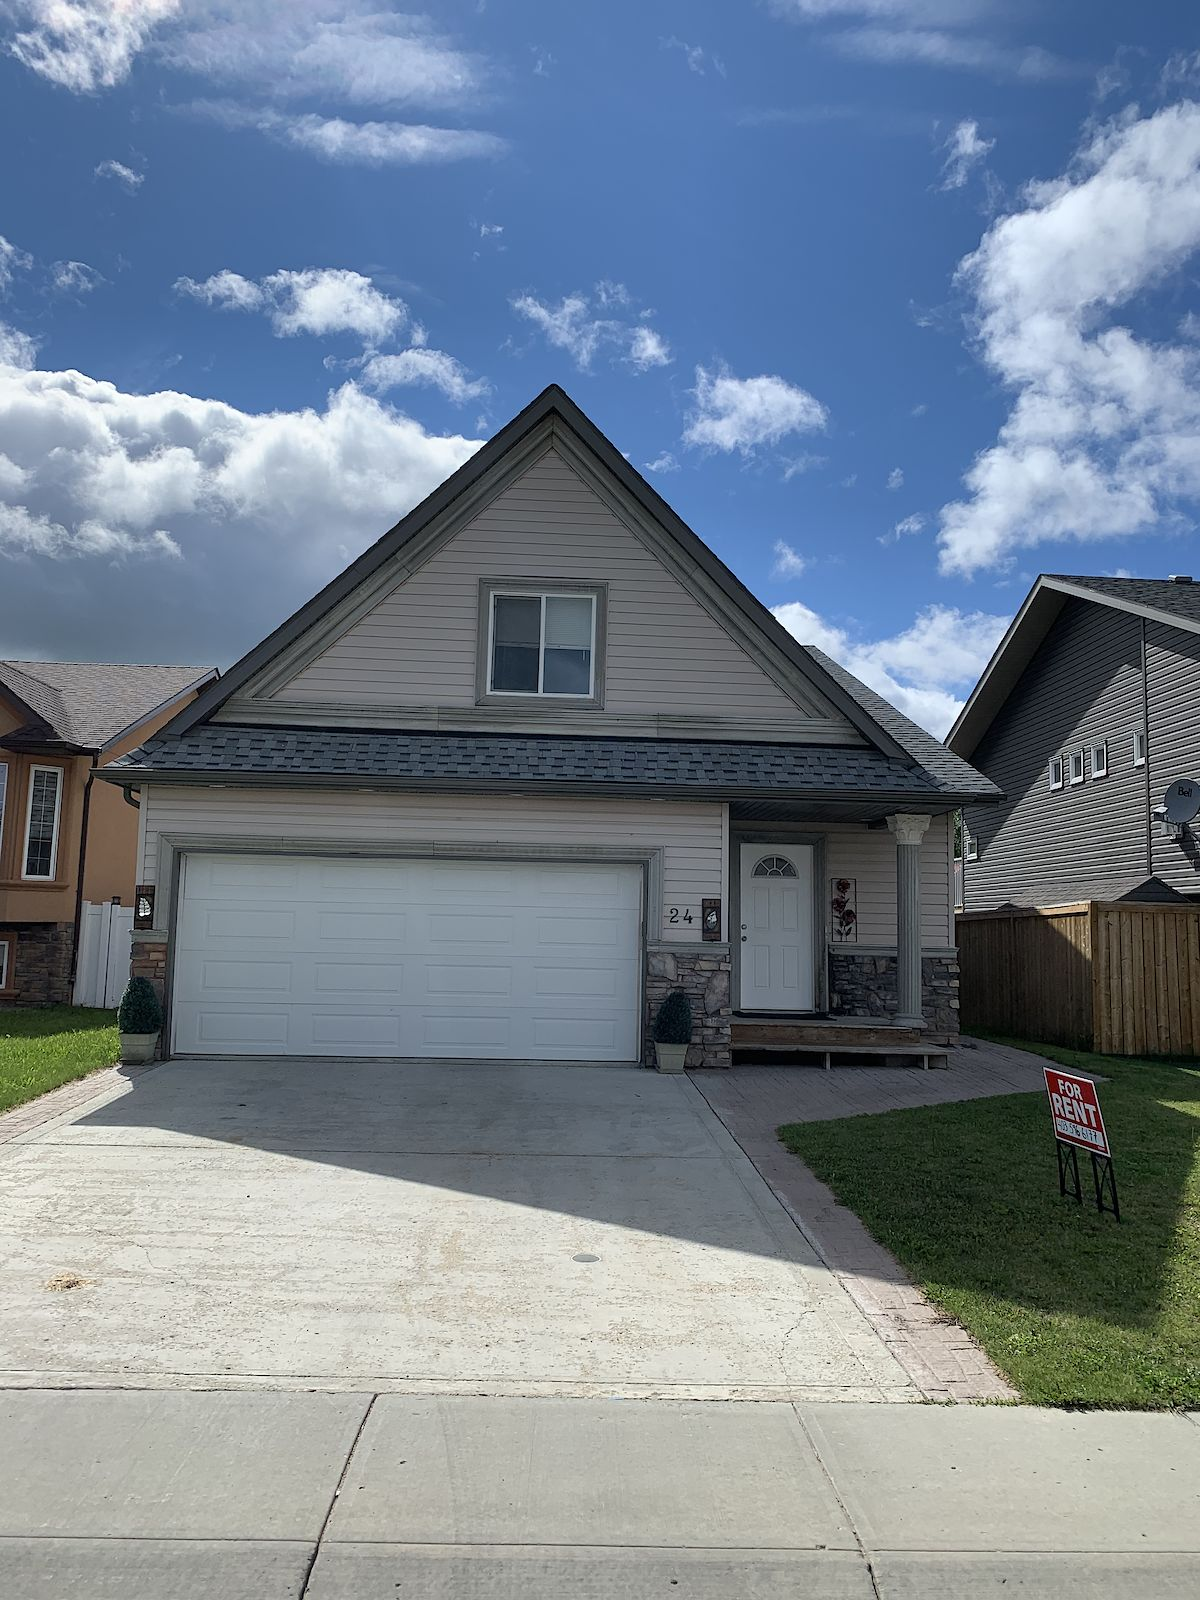 Lacombe 5 bedroom house w/ mother in law suite